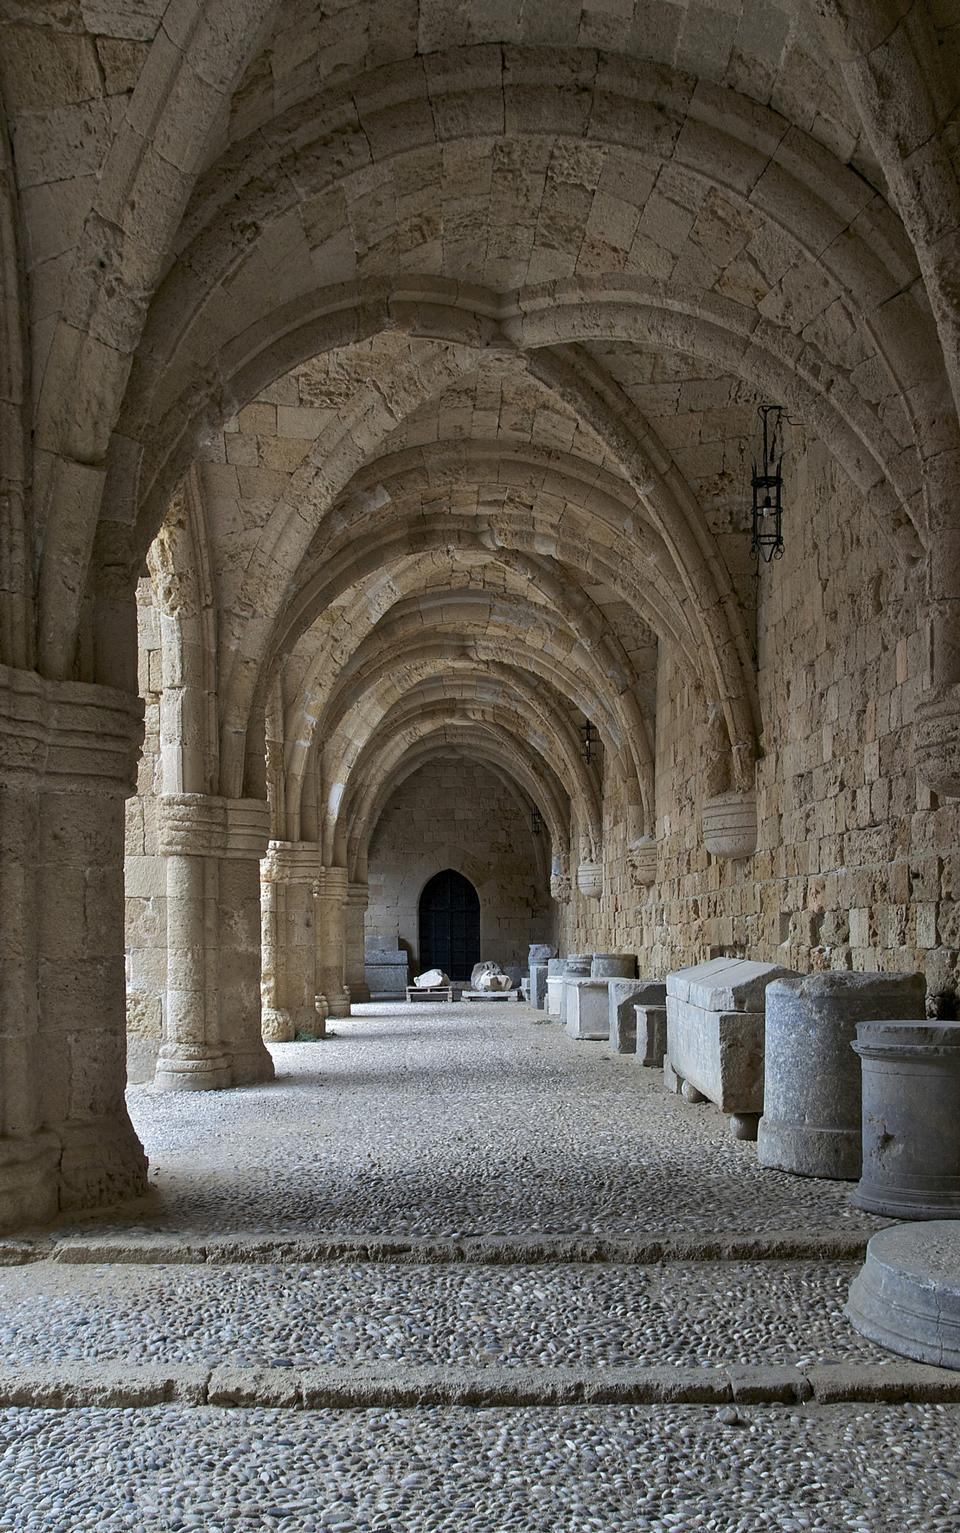 Rhodes - the medieval building of the Hospital of the Knights